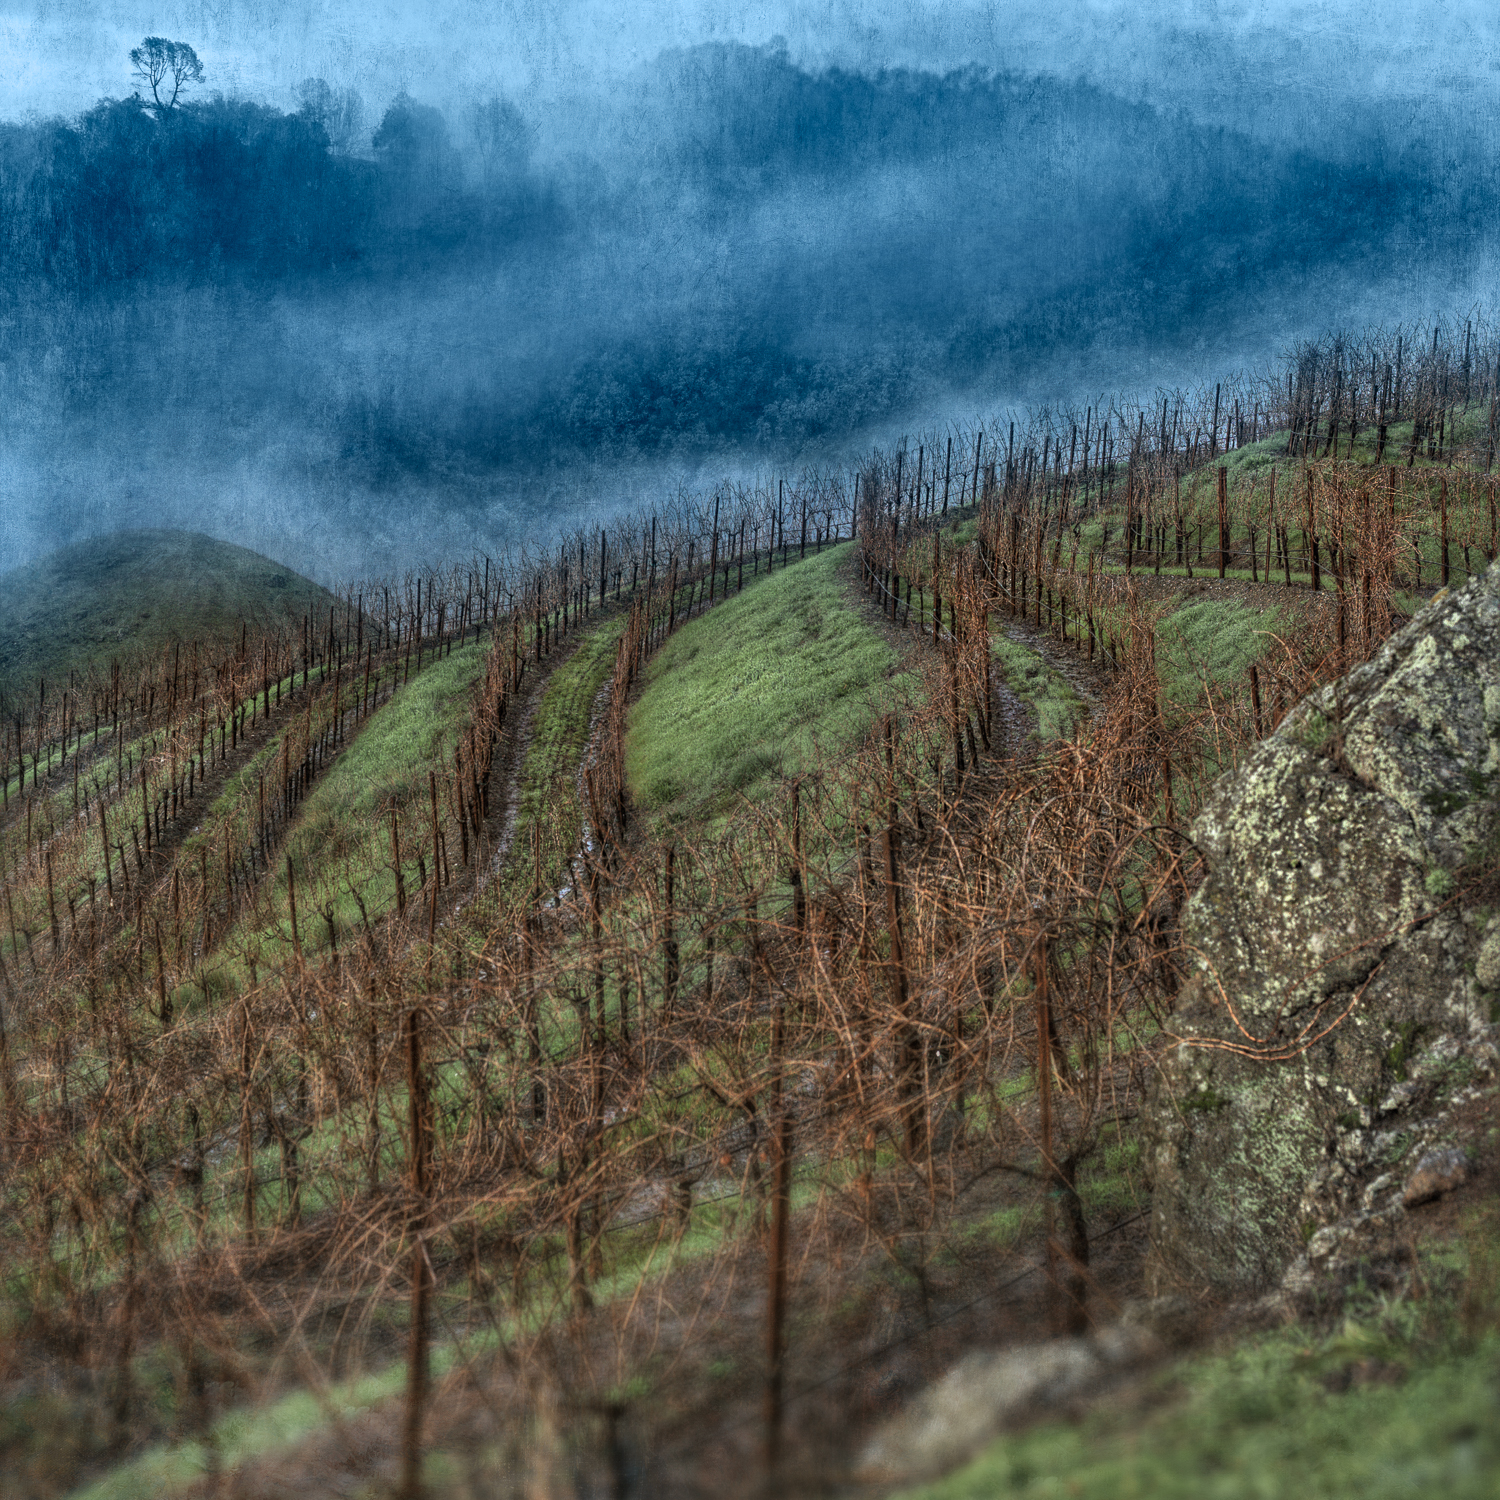 Hill_vineyard_blue_fog.jpg